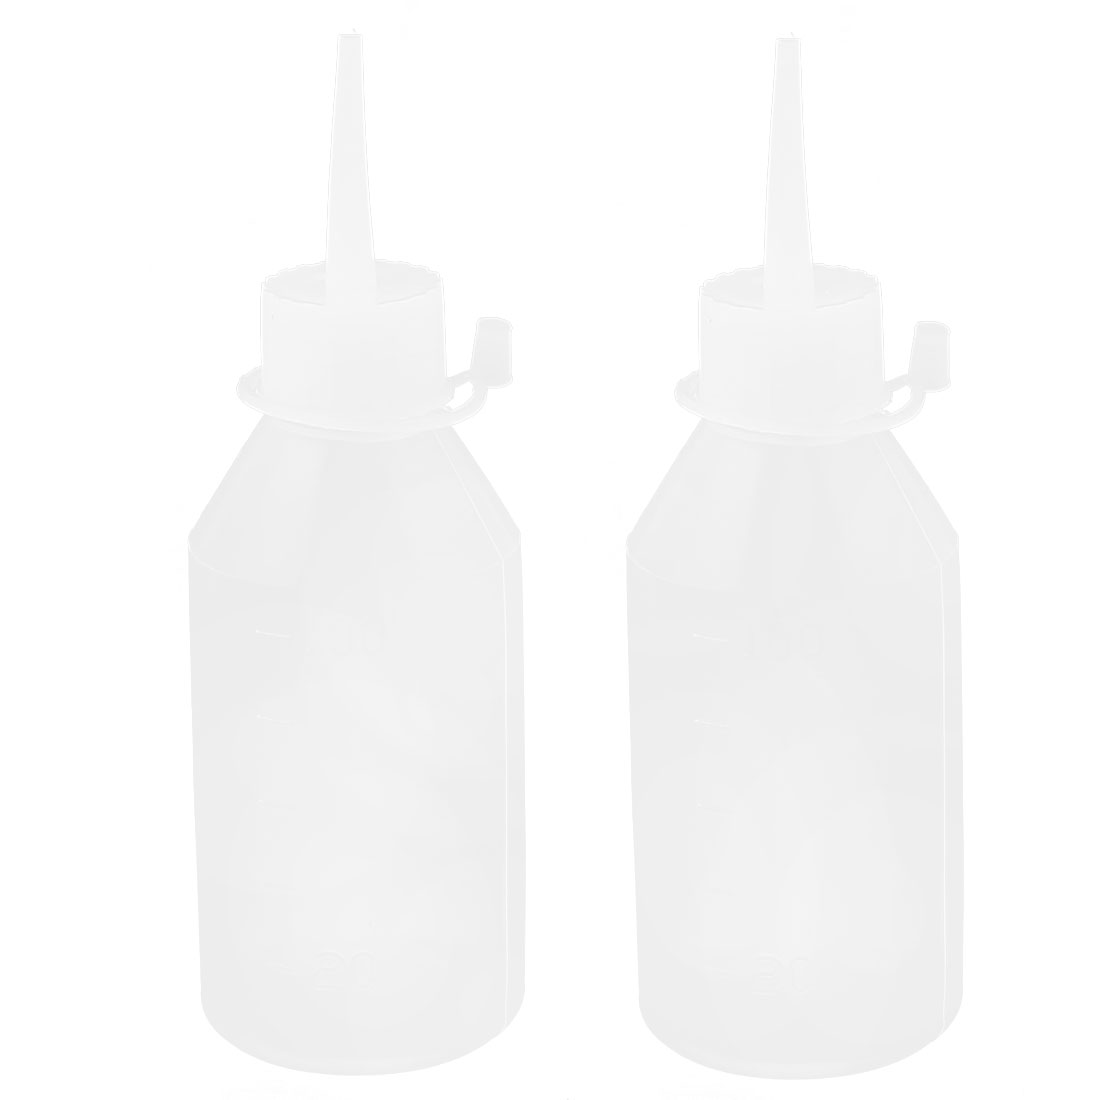 100mL Plastic Chemical Liquid Oil Storage Squeeze Bottle Dispenser White 2Pcs